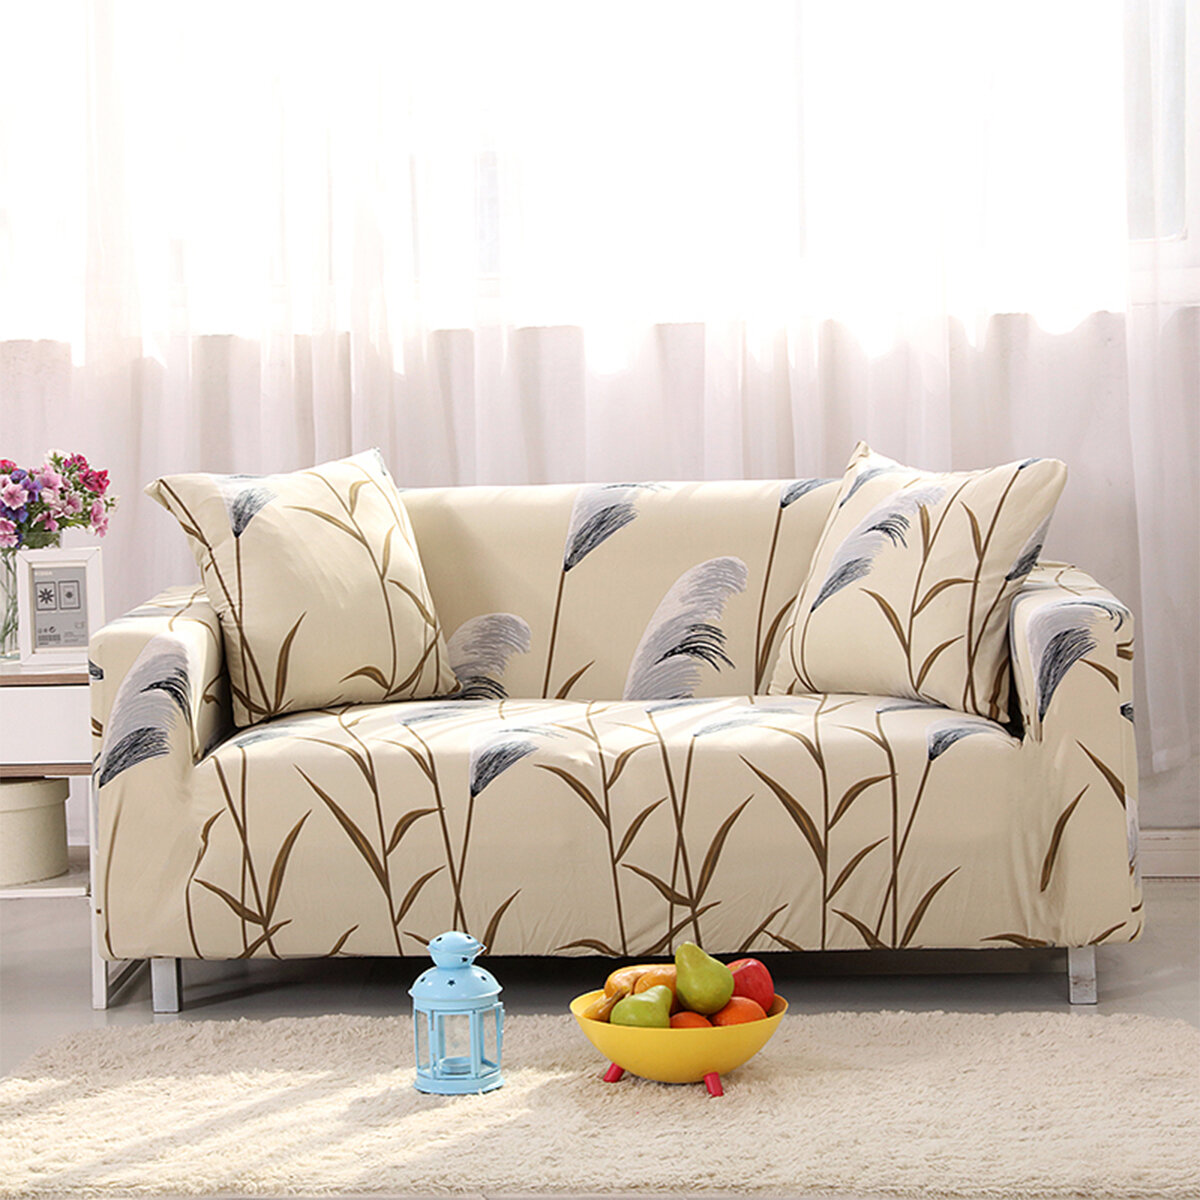 Chair Throw Covers Au Ship Stretch Sofa Seater Protector Washable Couch Cover Slipcover Decor Chair Covers